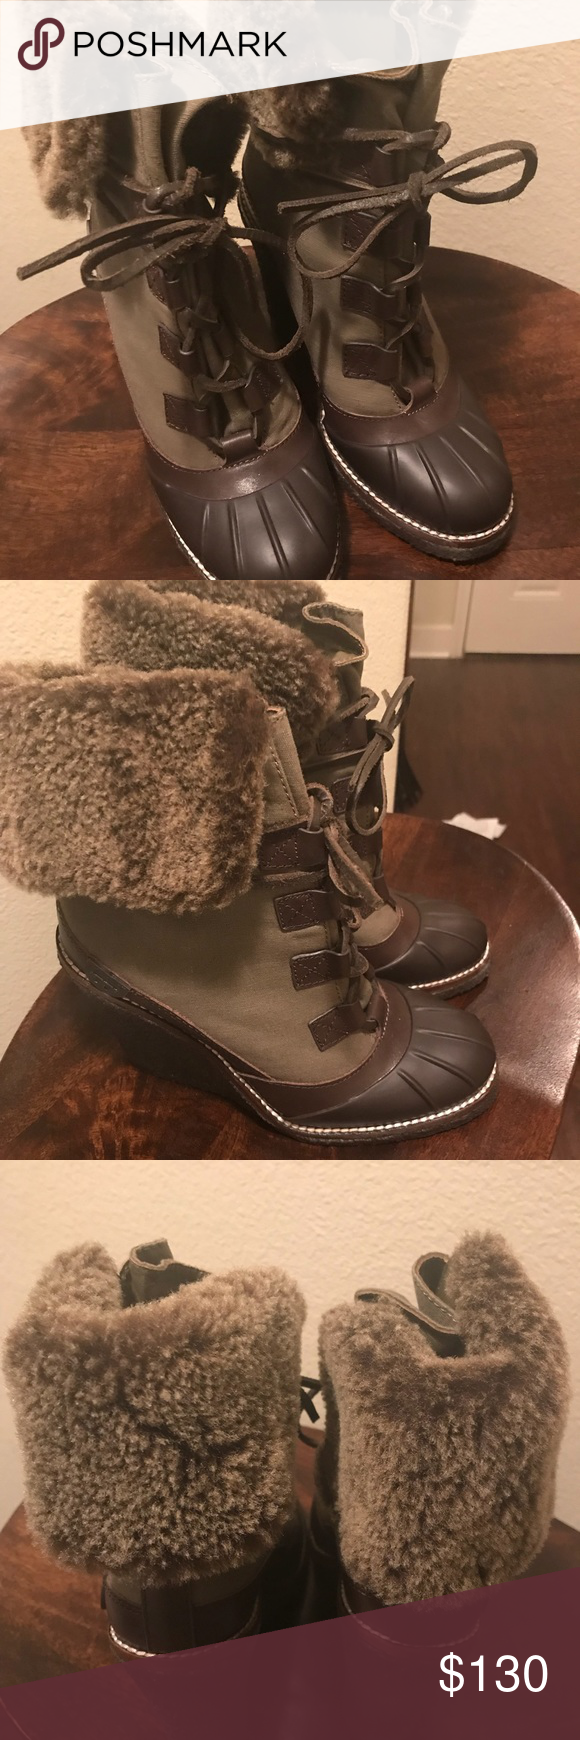 d40e2d37360 Tory Burch Faux fur ankle wedge boots Tory Burch Fairfax Shearling Fur Wedge